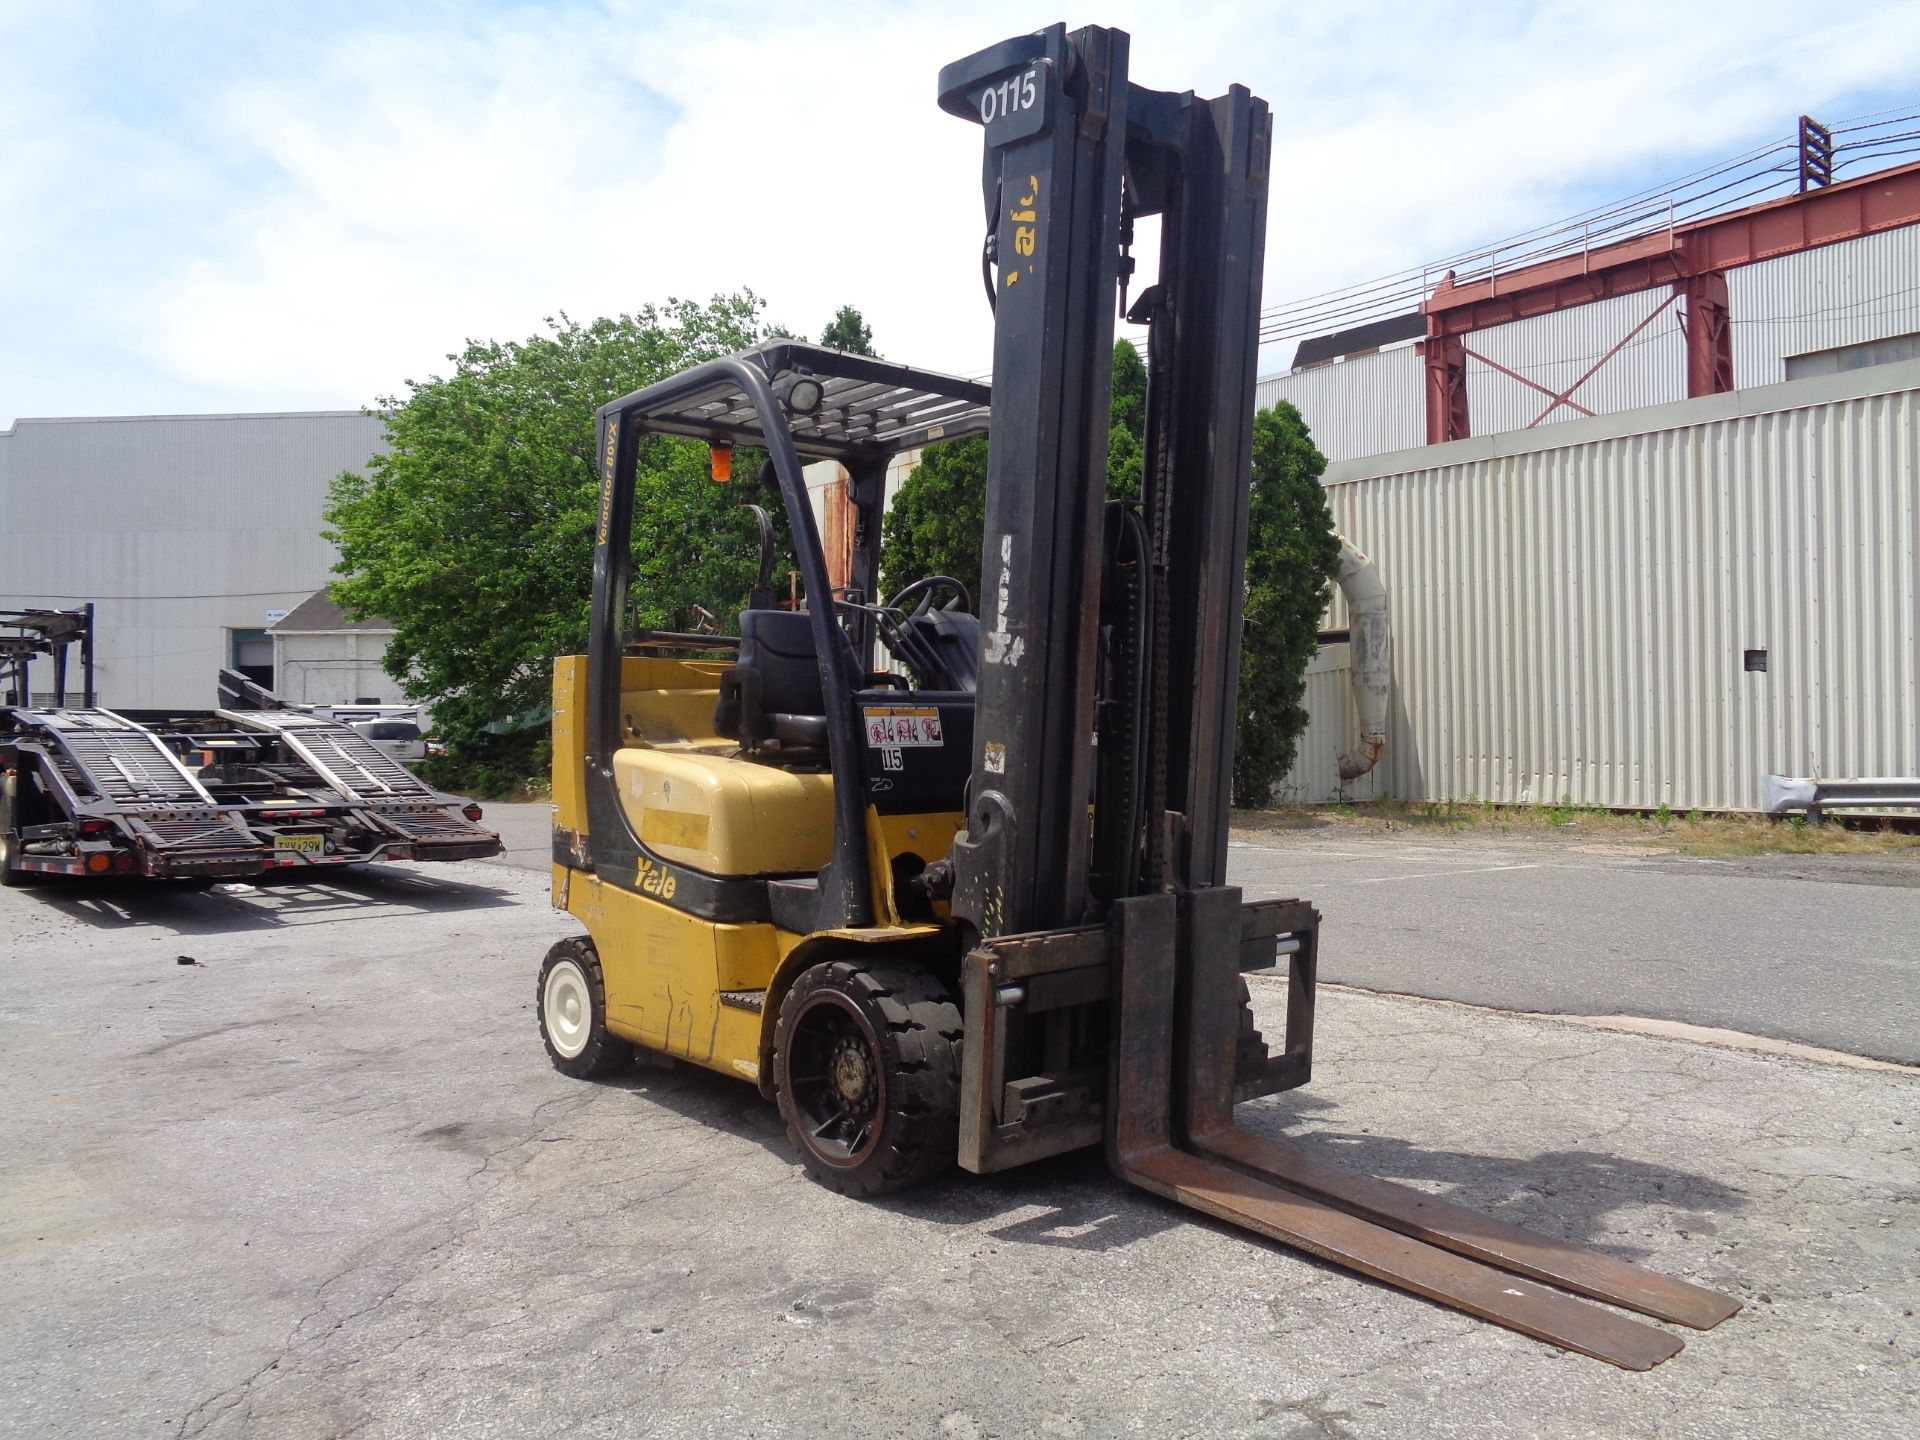 Yale GC080VXNGSE107.6 8,000lb Forklift - Image 6 of 18